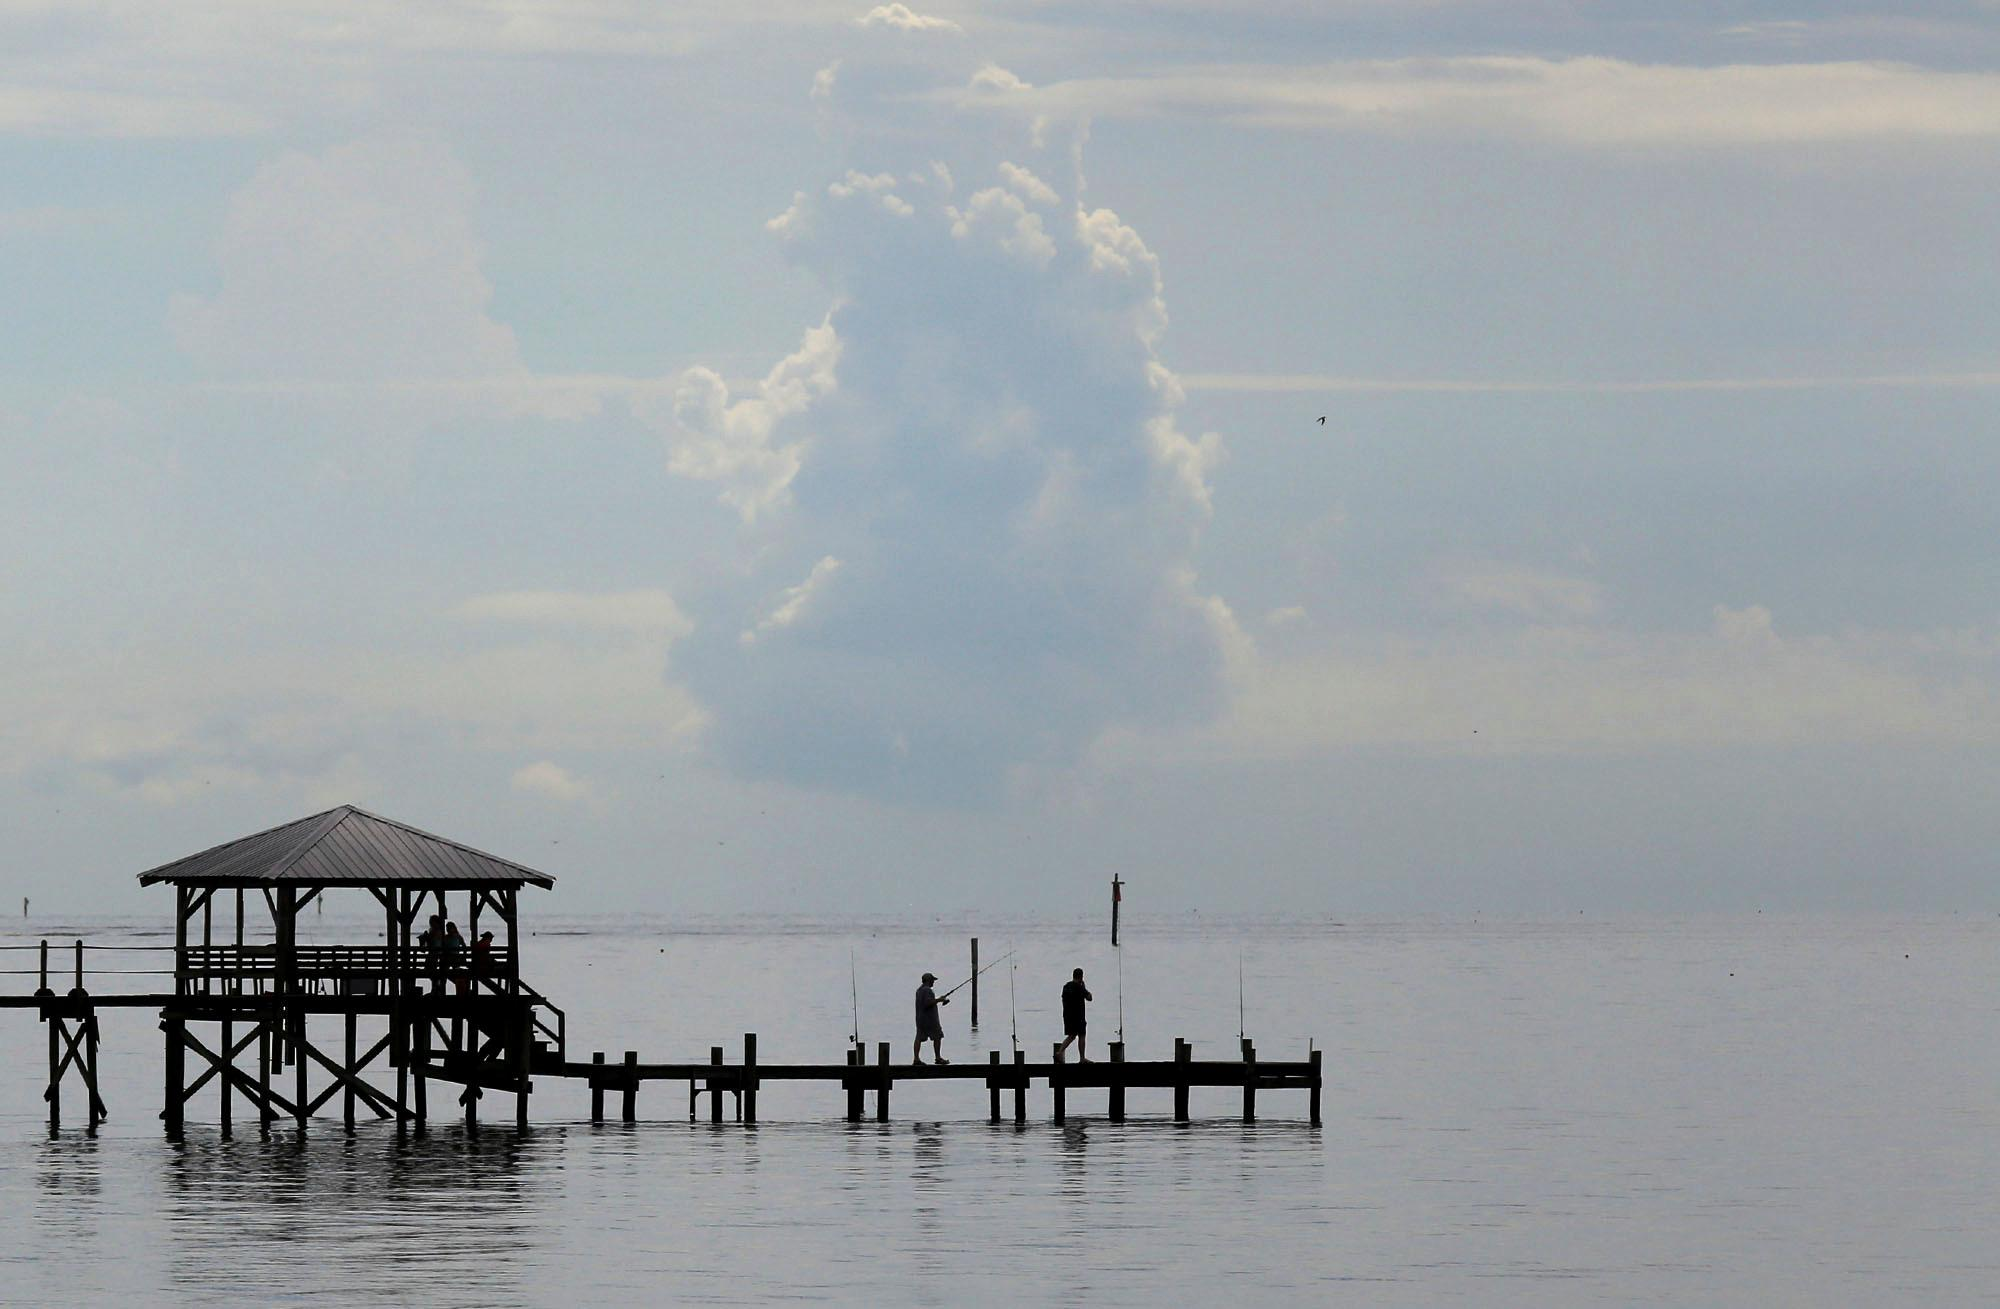 A pair of fishermen walk out on a pier in Pass Christian, Miss., on Friday May 24, 2018. Heavy rains are expected over the Memorial Day weekend in south Mississippi. (John Fitzhugh/The Sun Herald via AP)